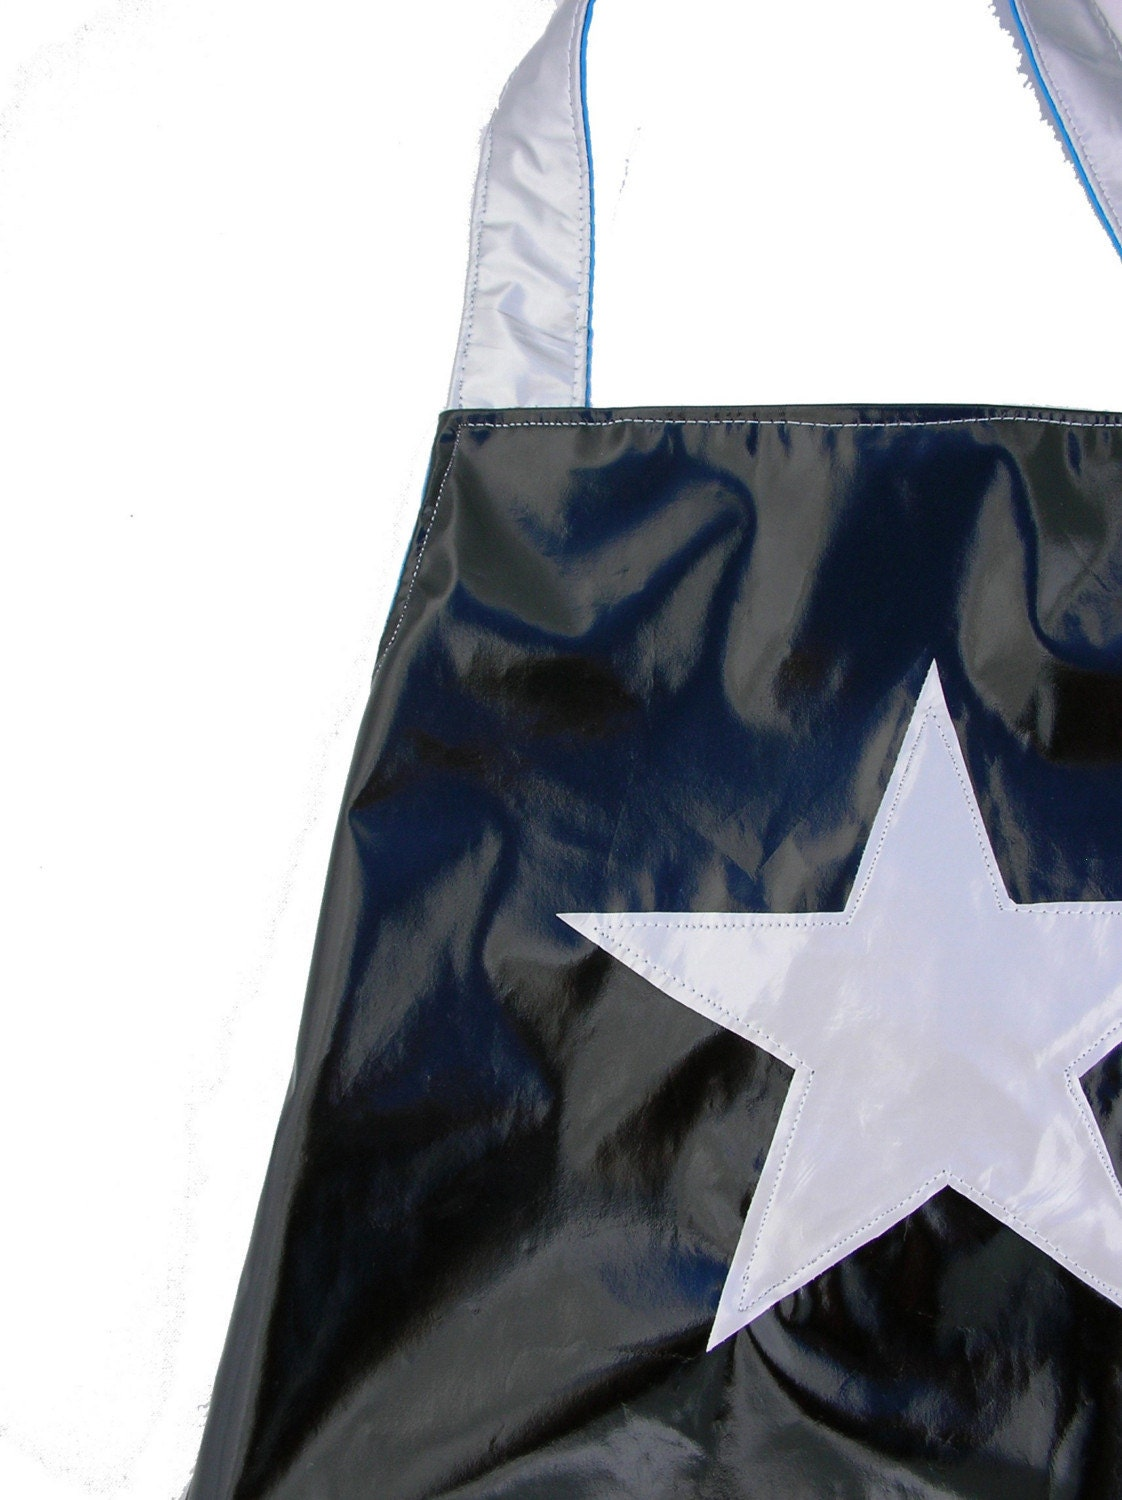 ROCK STAR Vinyl Apron by oneluckybaby on Etsy